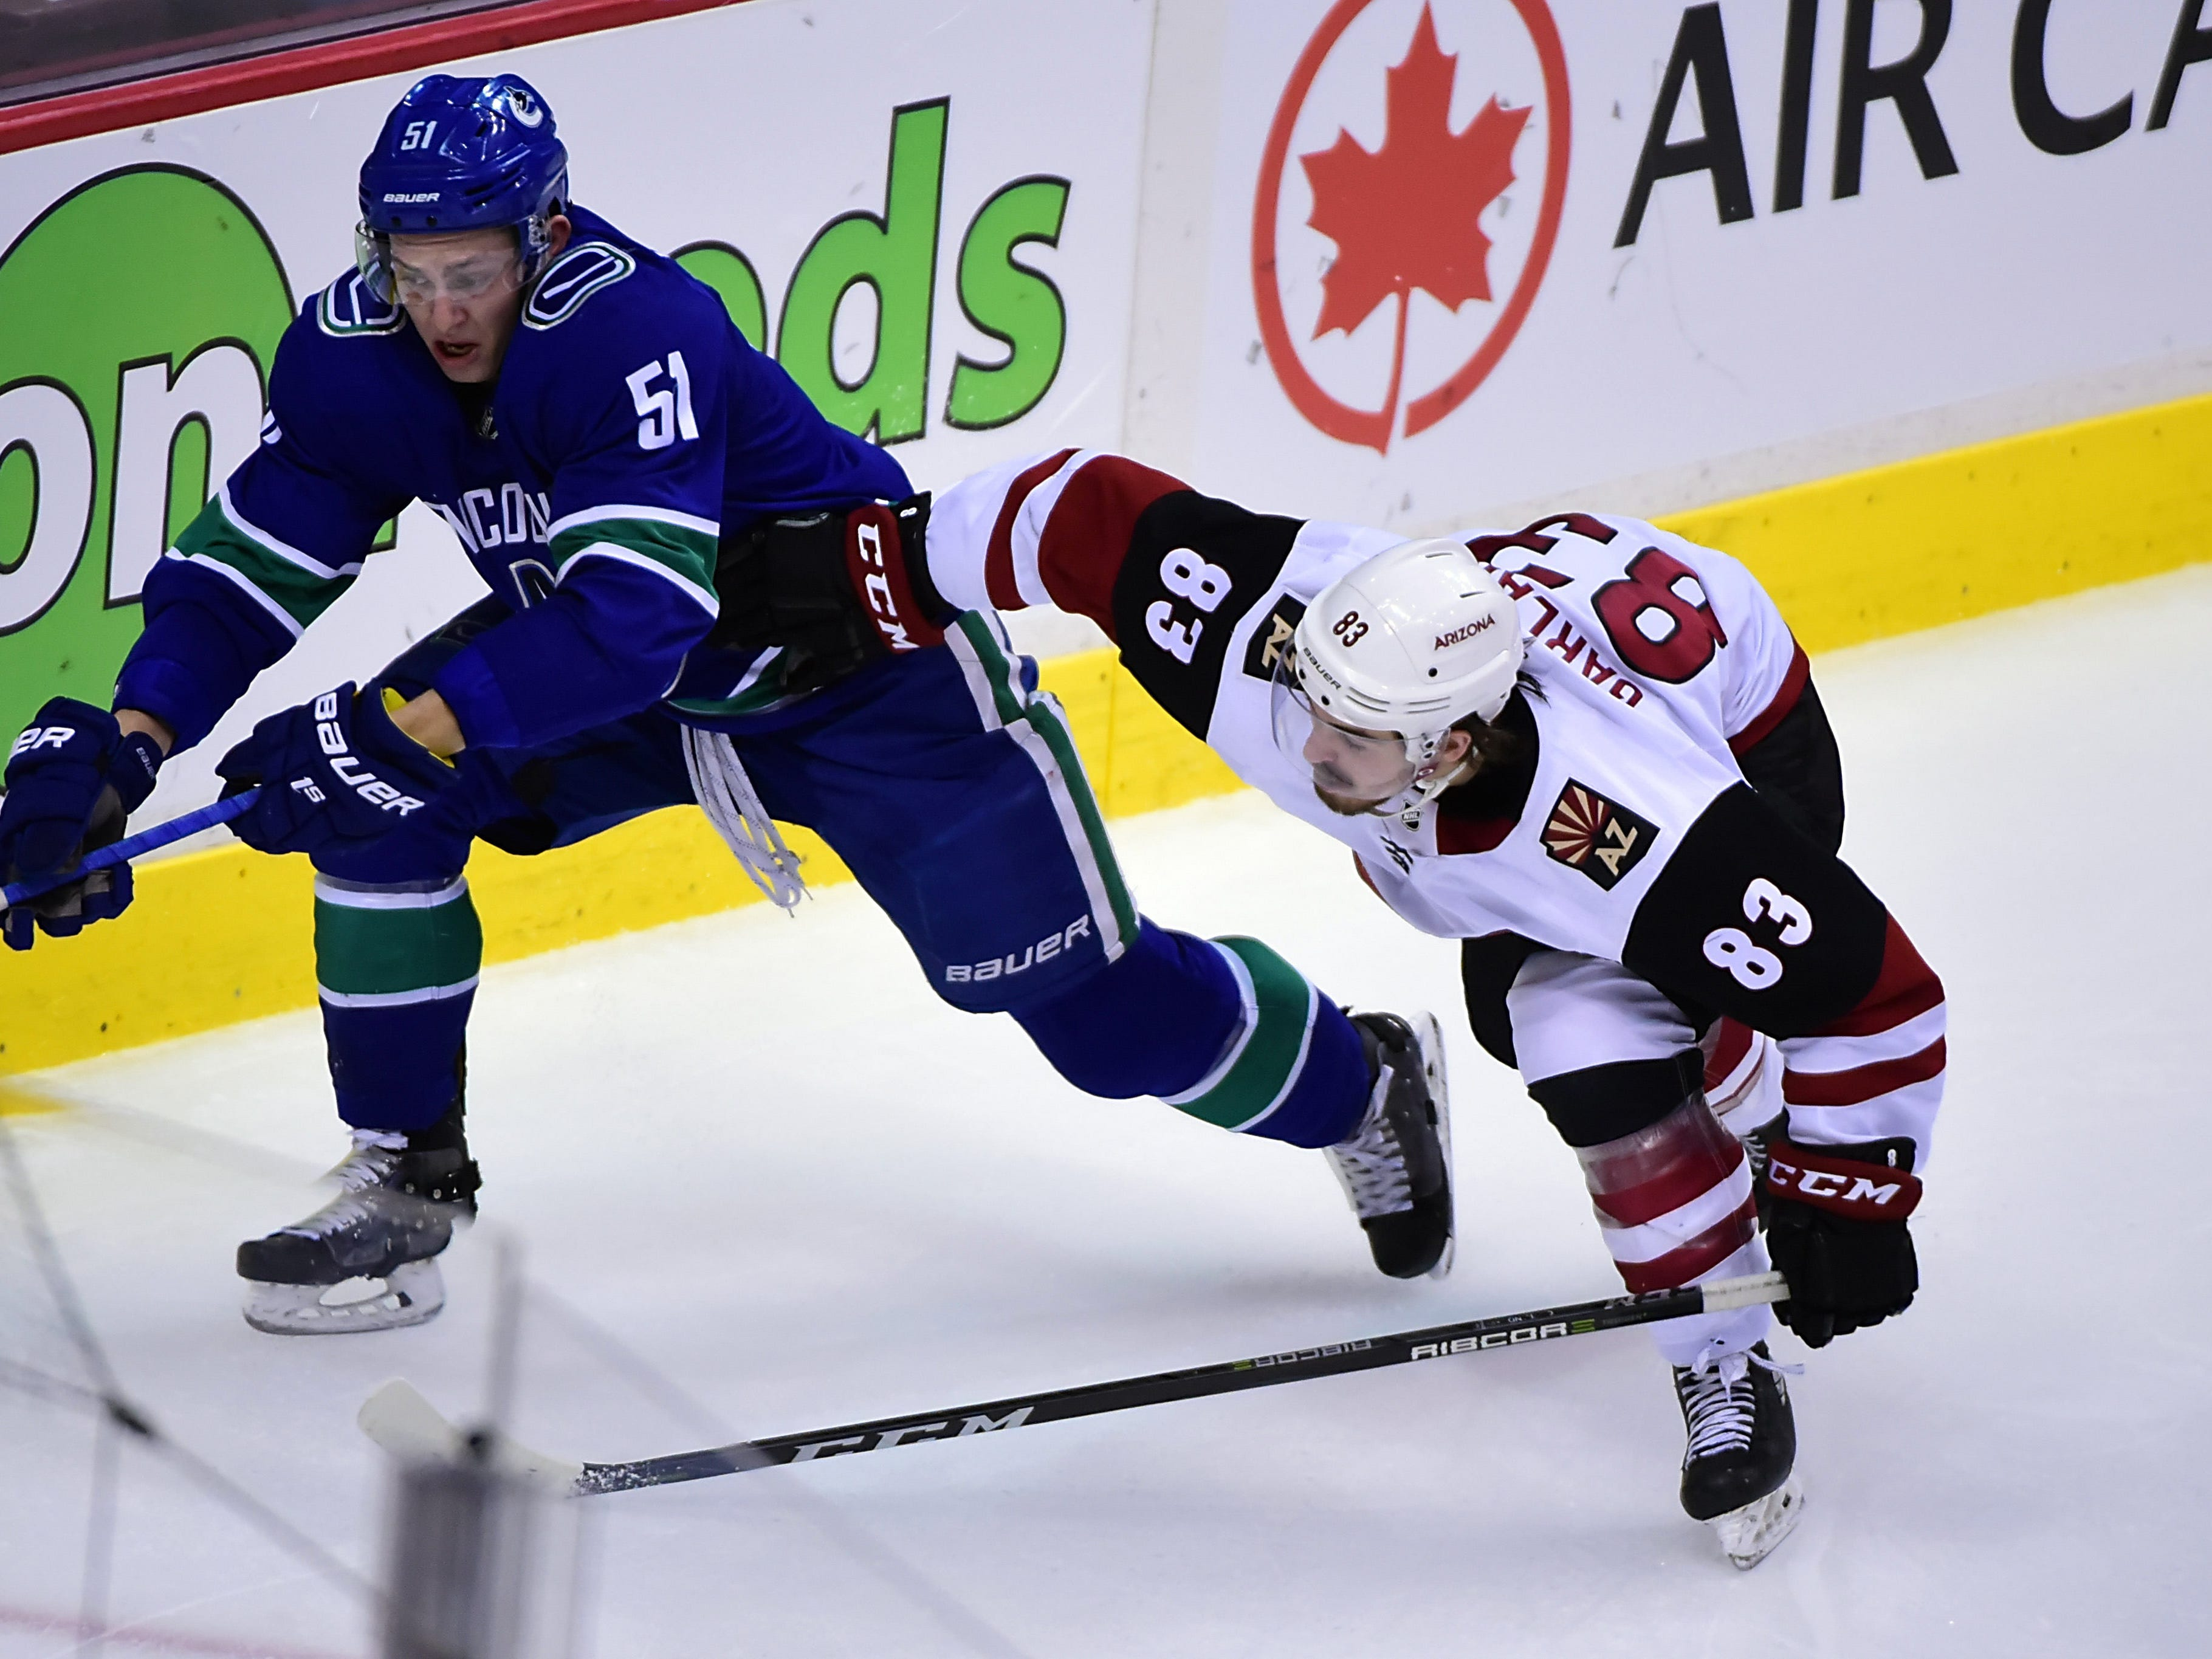 Jan 10, 2019; Vancouver, British Columbia, CAN; Arizona Coyotes forward Conor Garland (83) reaches for the puck against Vancouver Canucks defenseman Troy Stecher (51) during the second period at Rogers Arena. Mandatory Credit: Anne-Marie Sorvin-USA TODAY Sports